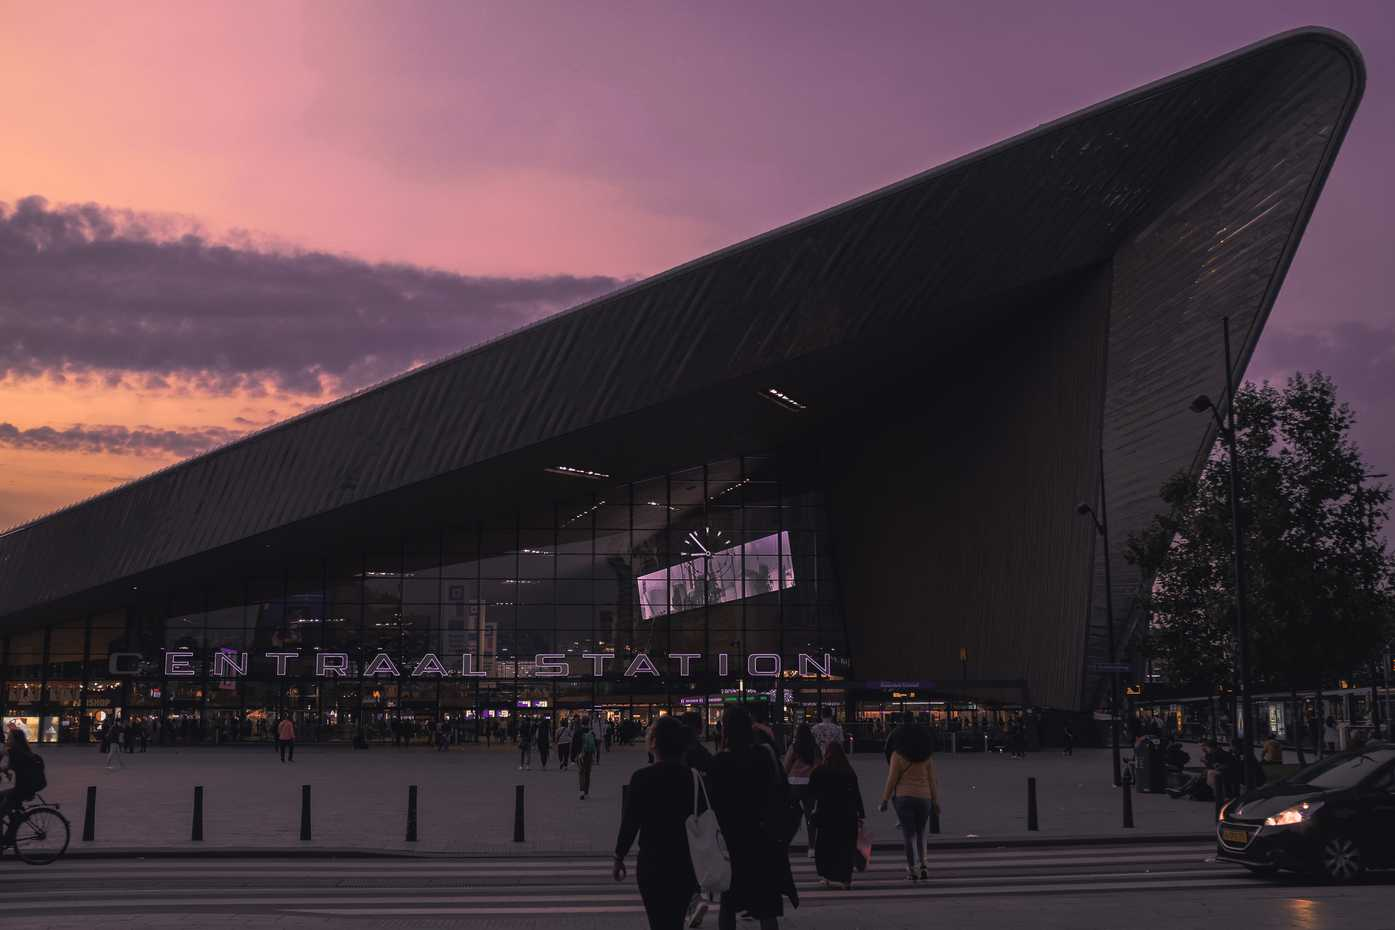 The Rotterdam Centraal Station at dusk